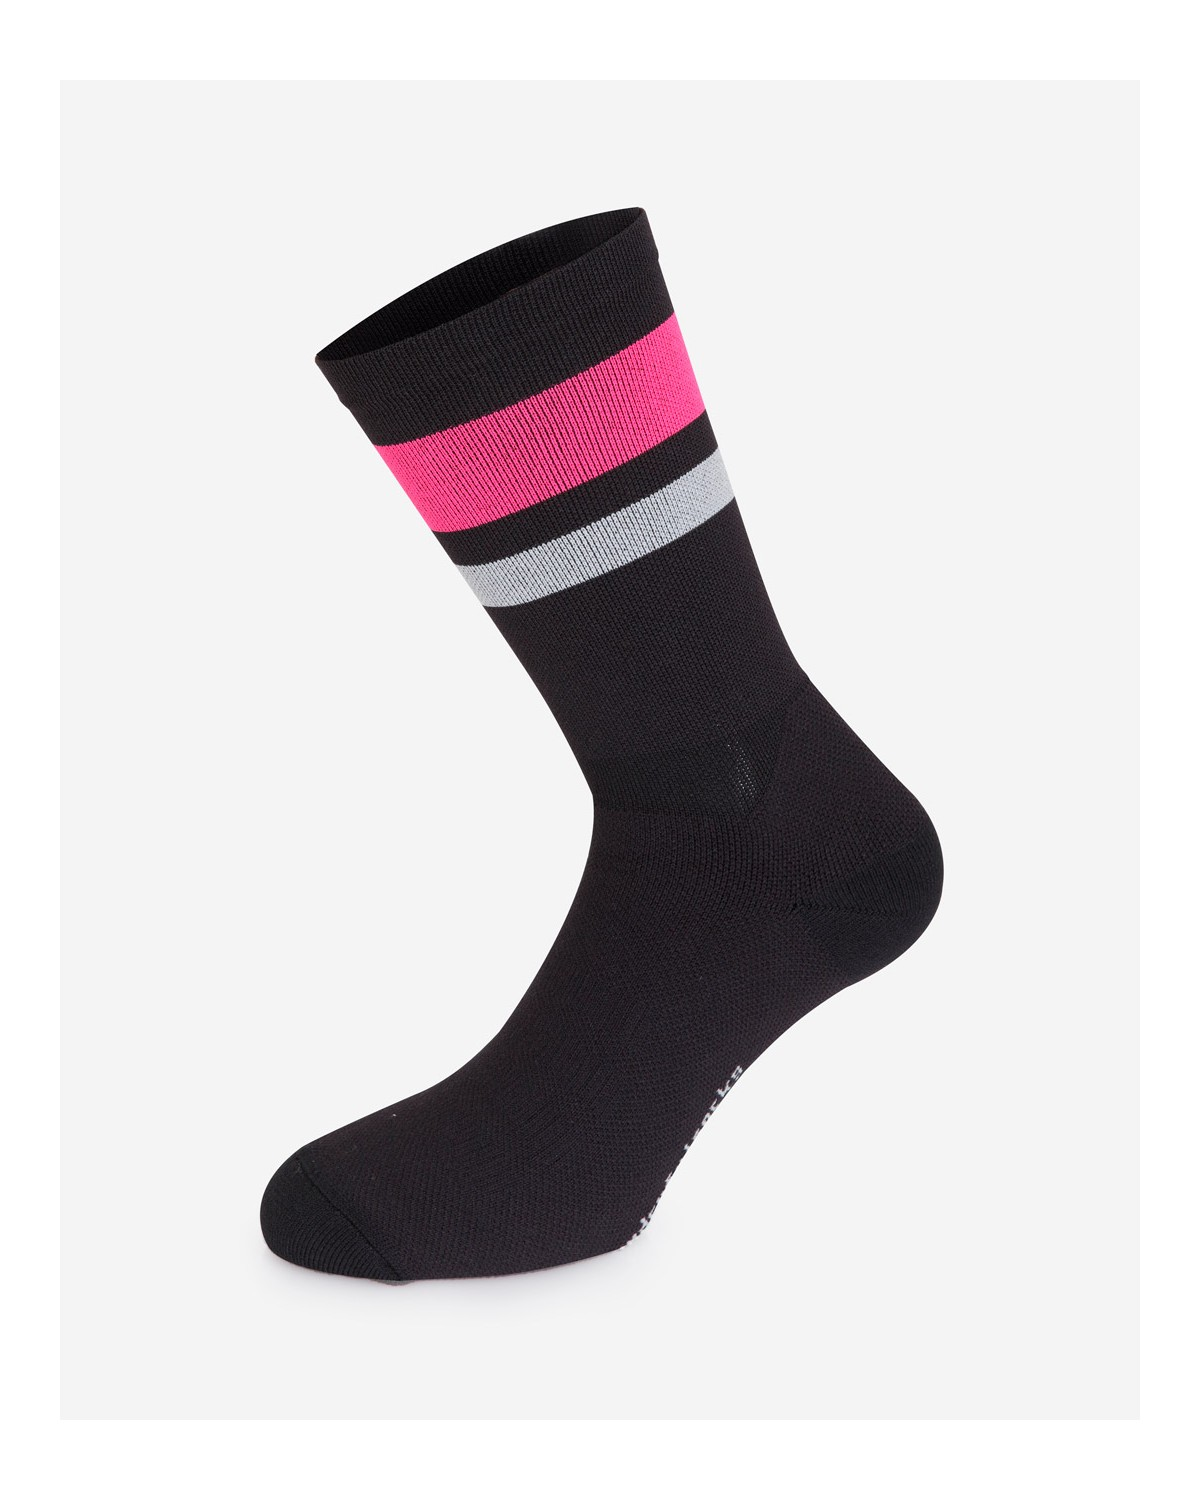 The Wonderful Socks Winter Radsocken schwarz/pink